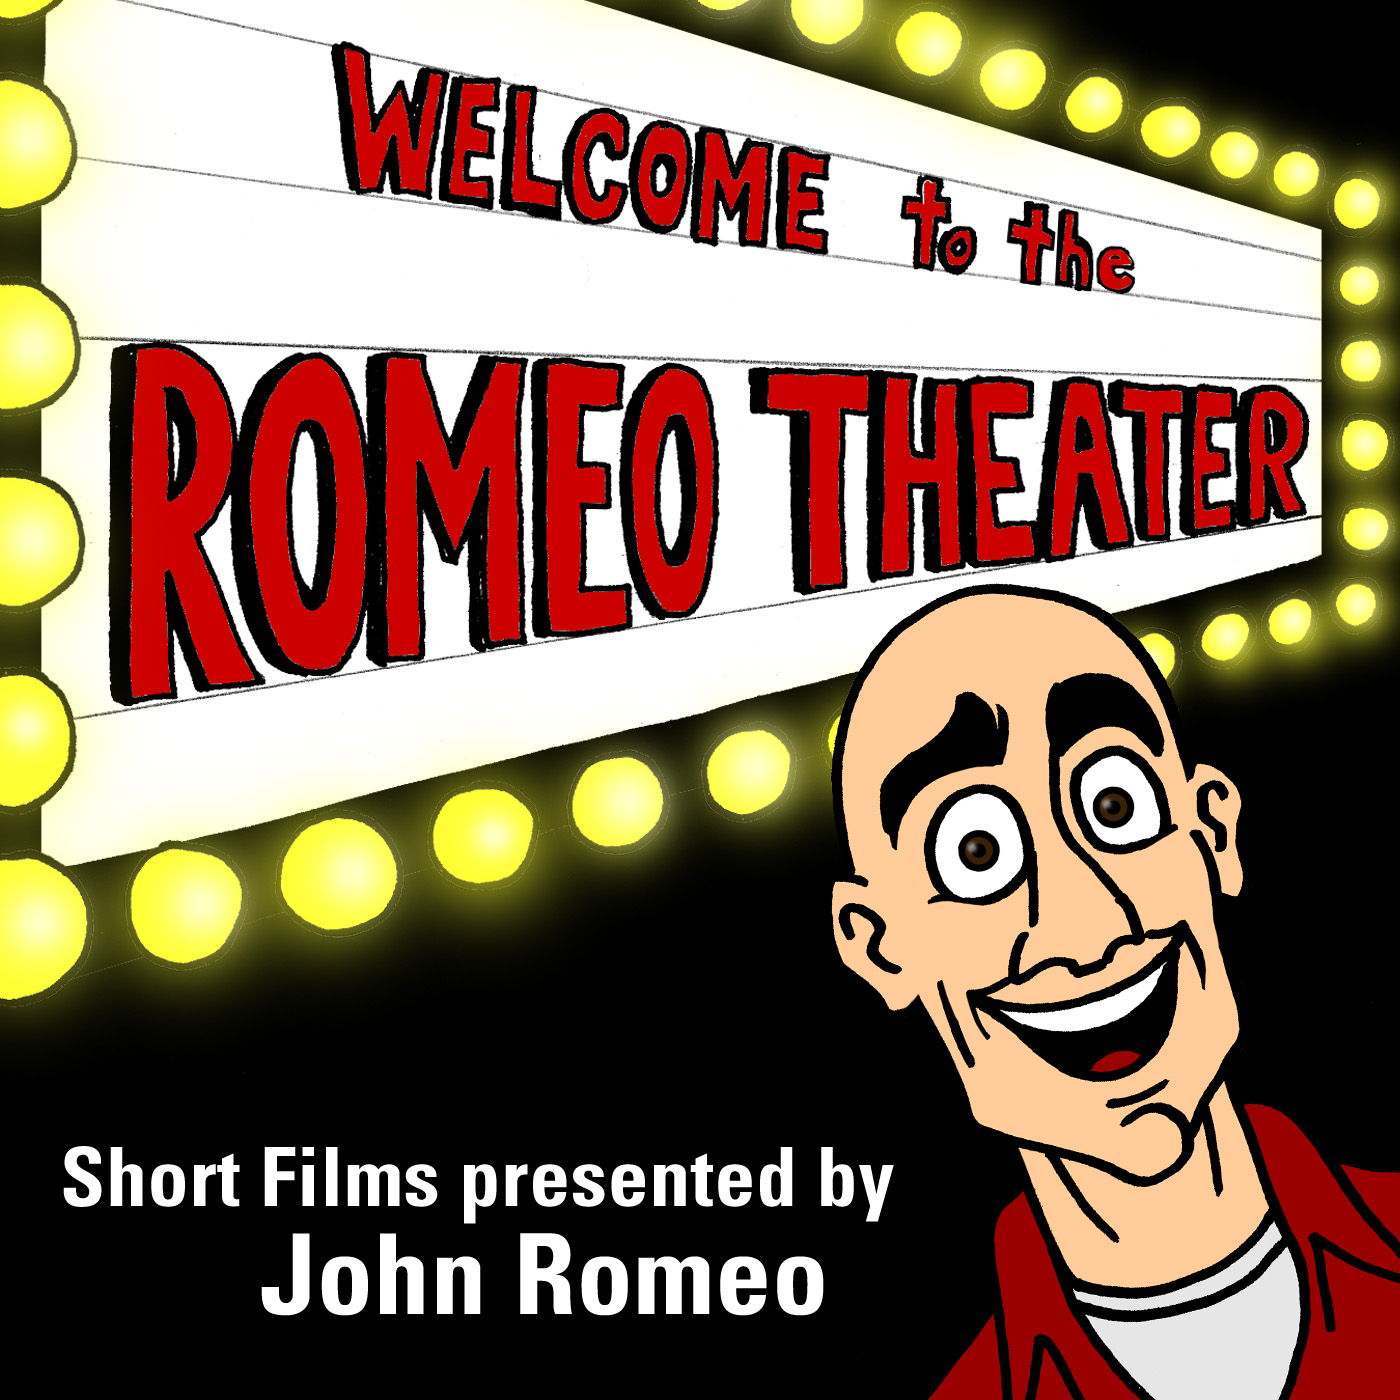 The Romeo Theater - Short Films